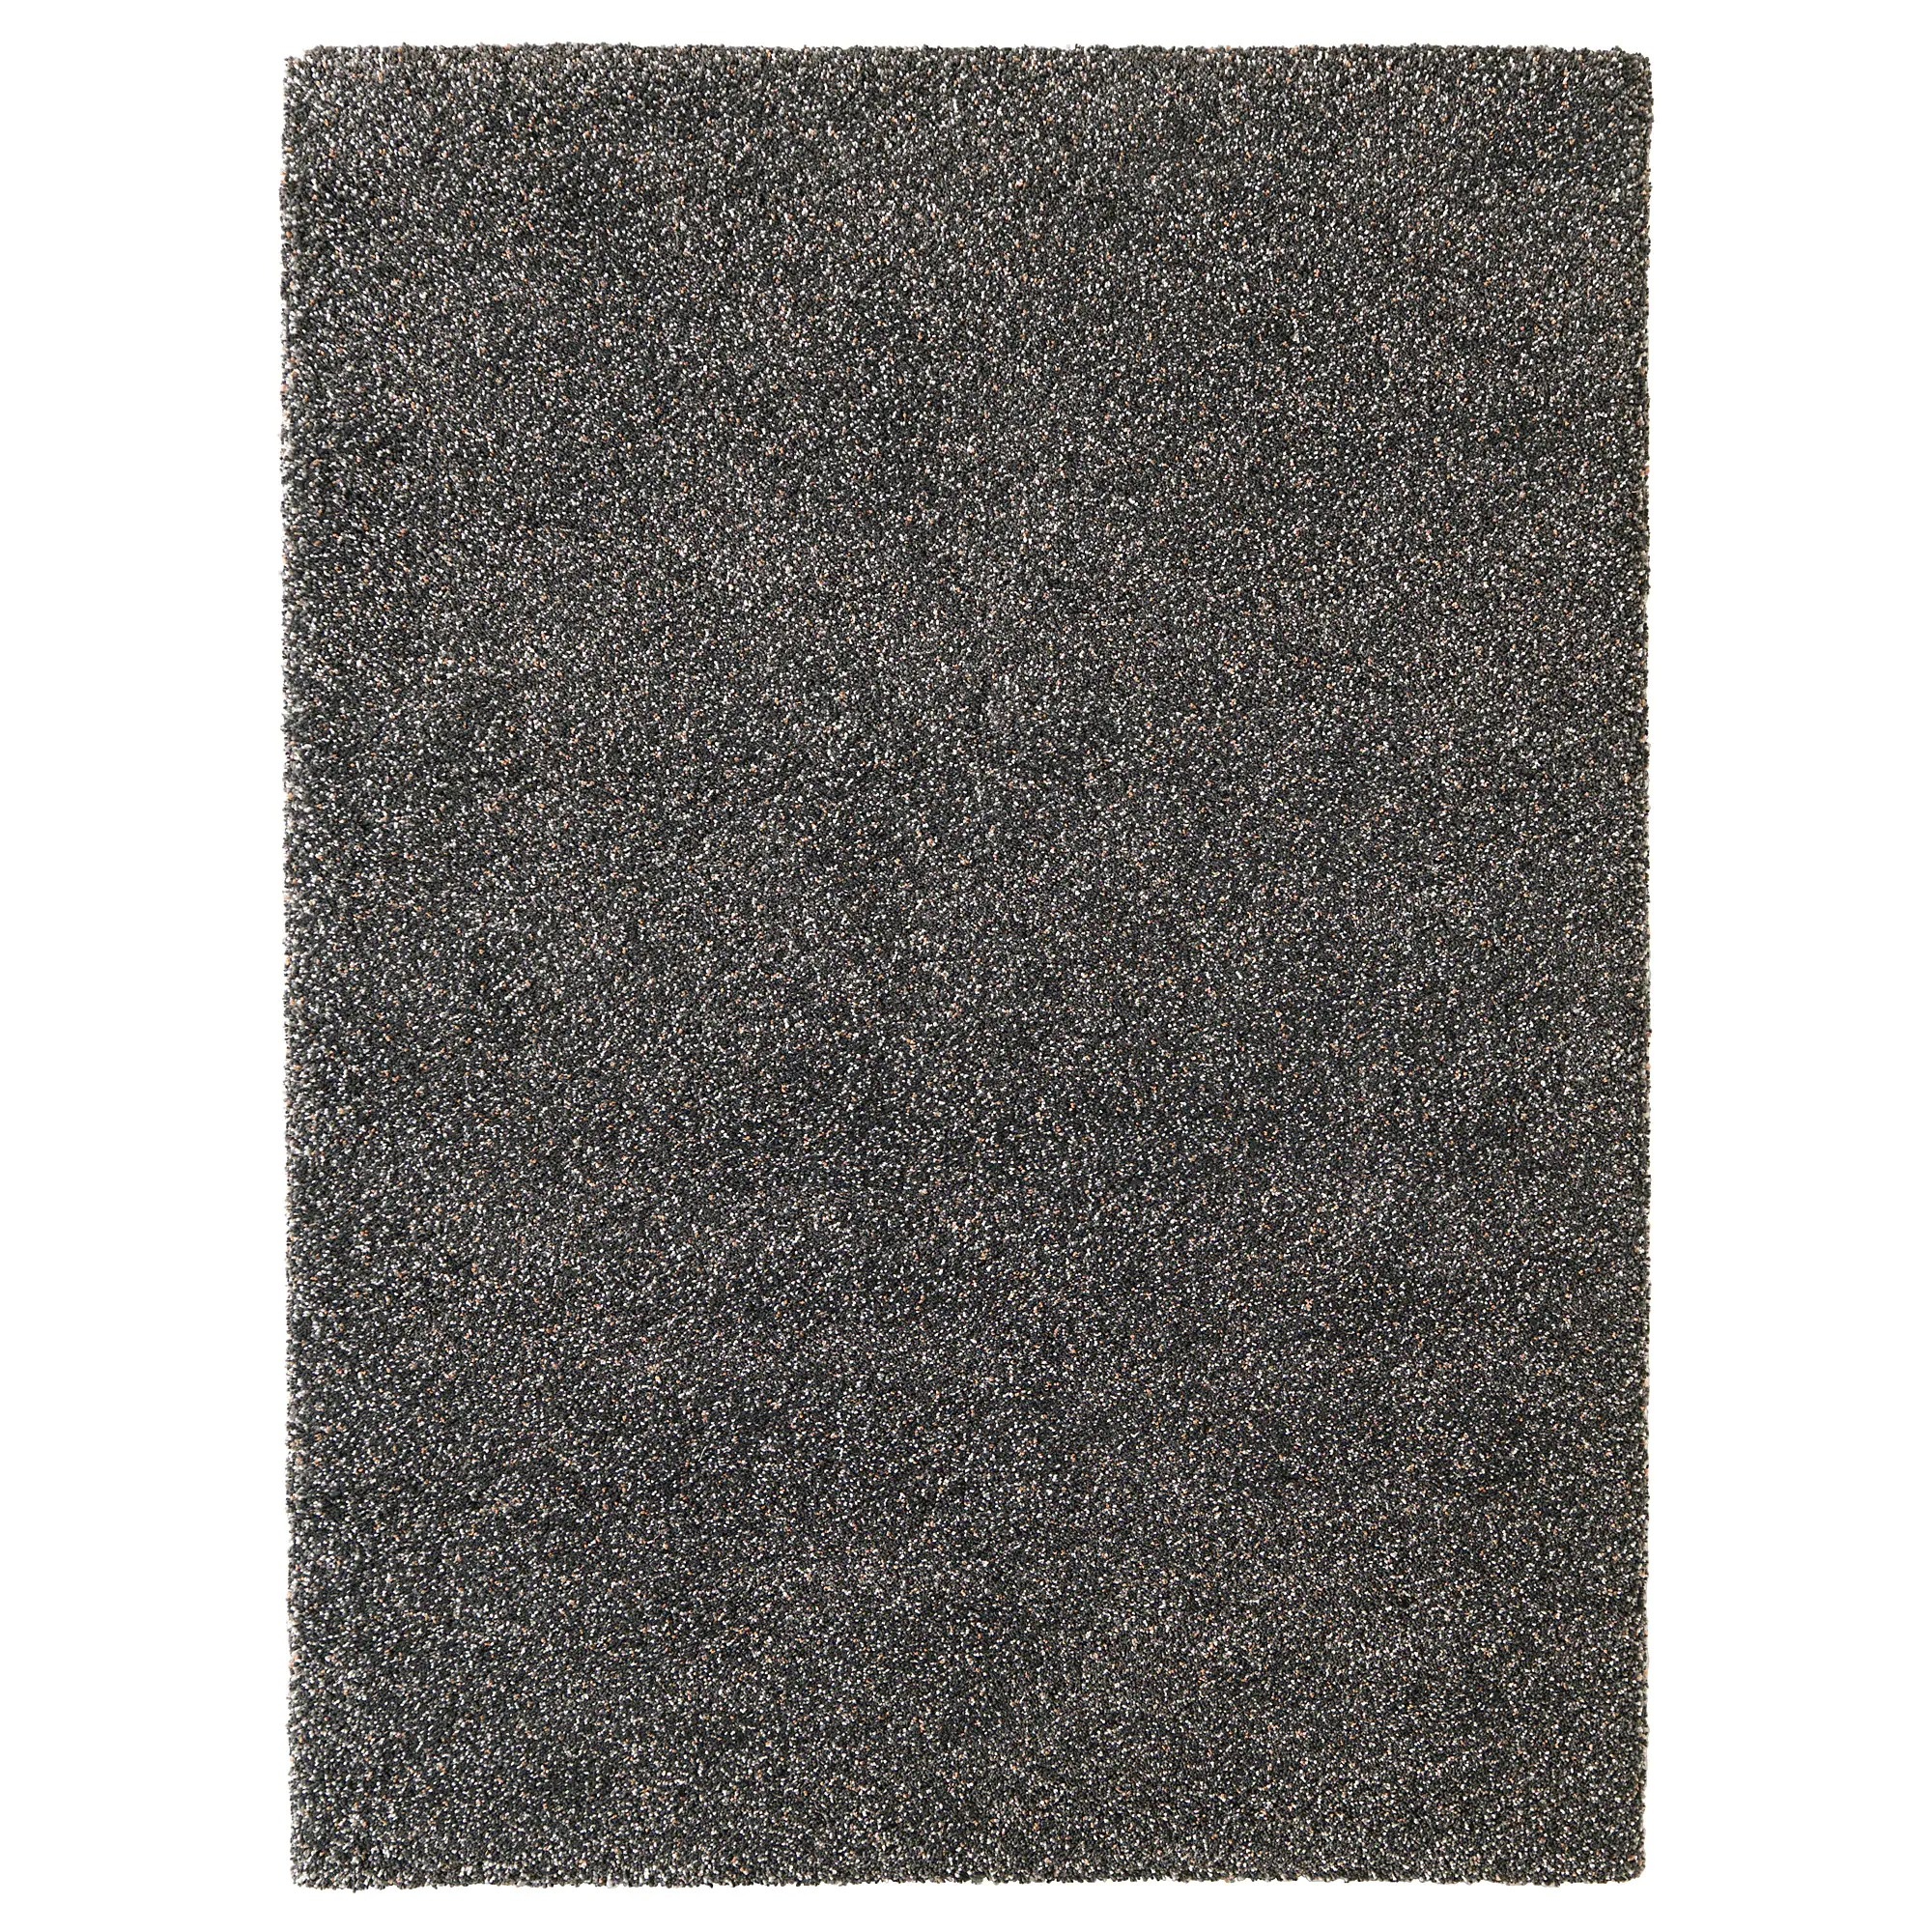 Backing Tapijt Vindum Rug High Pile Dark Gray